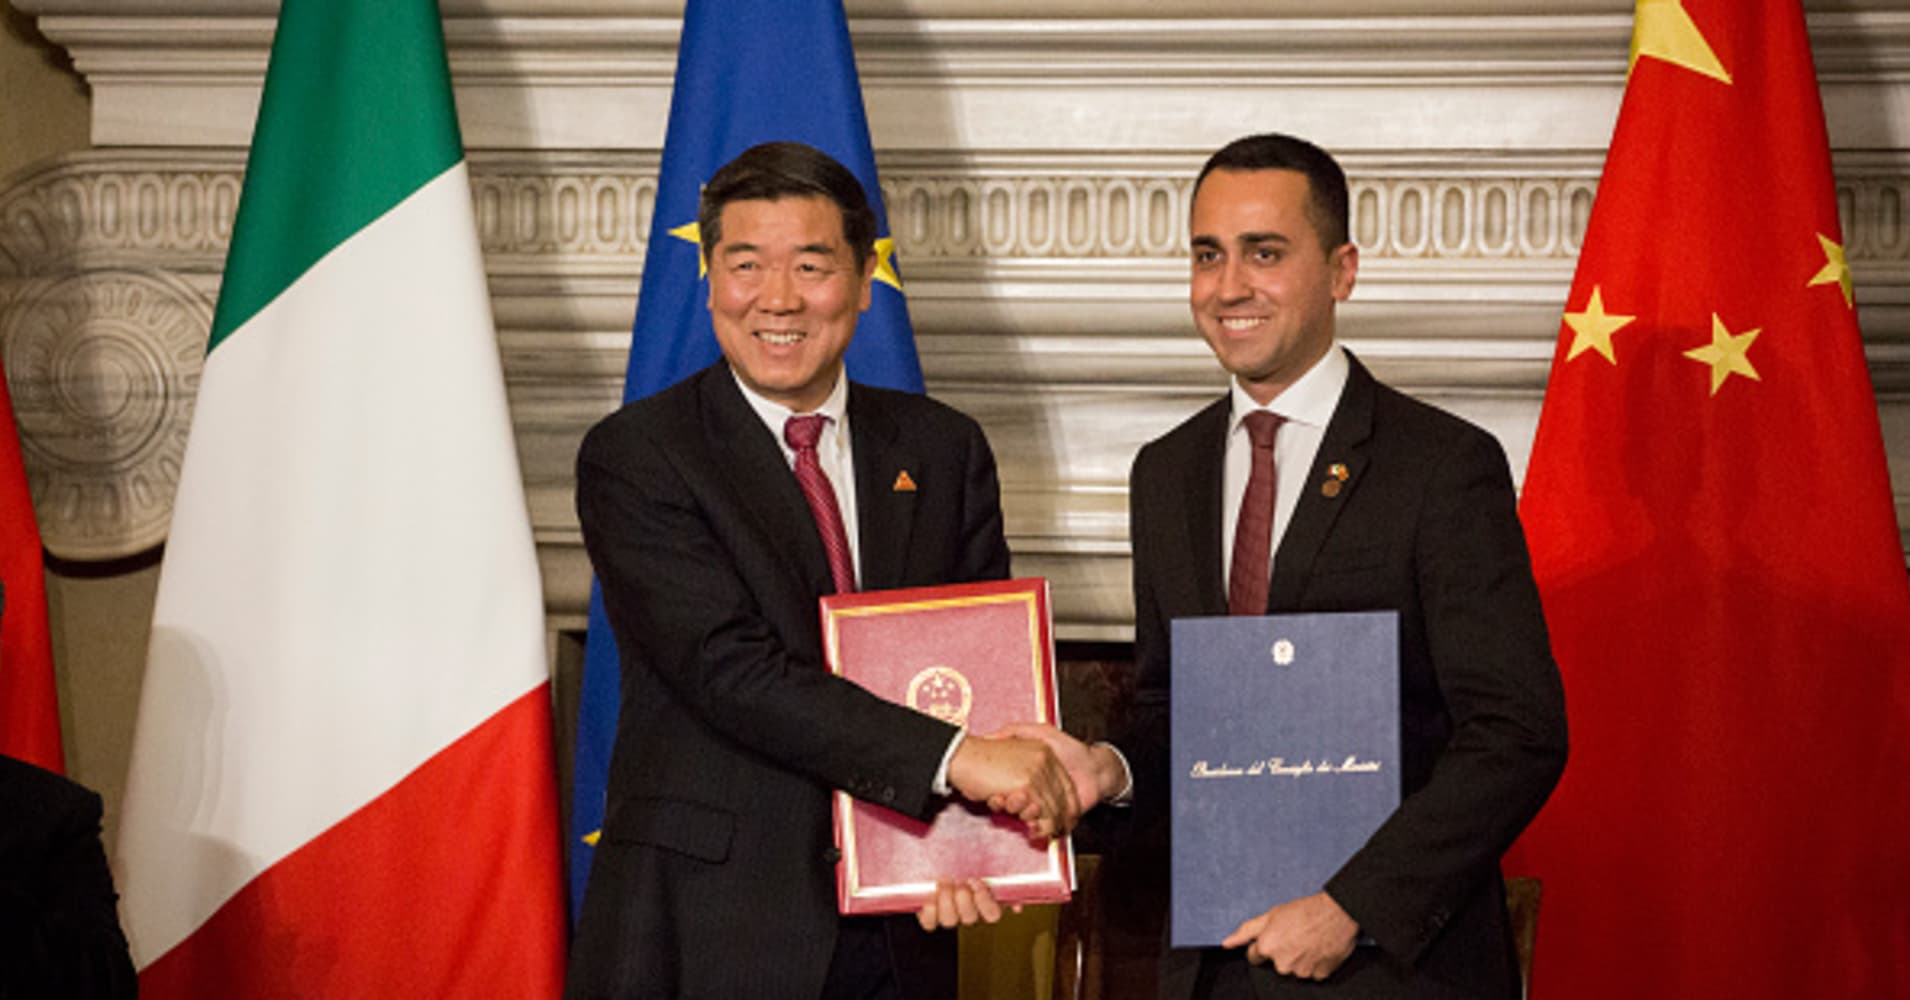 Italy Di Maio first EU country to join China Belt and Road initiative